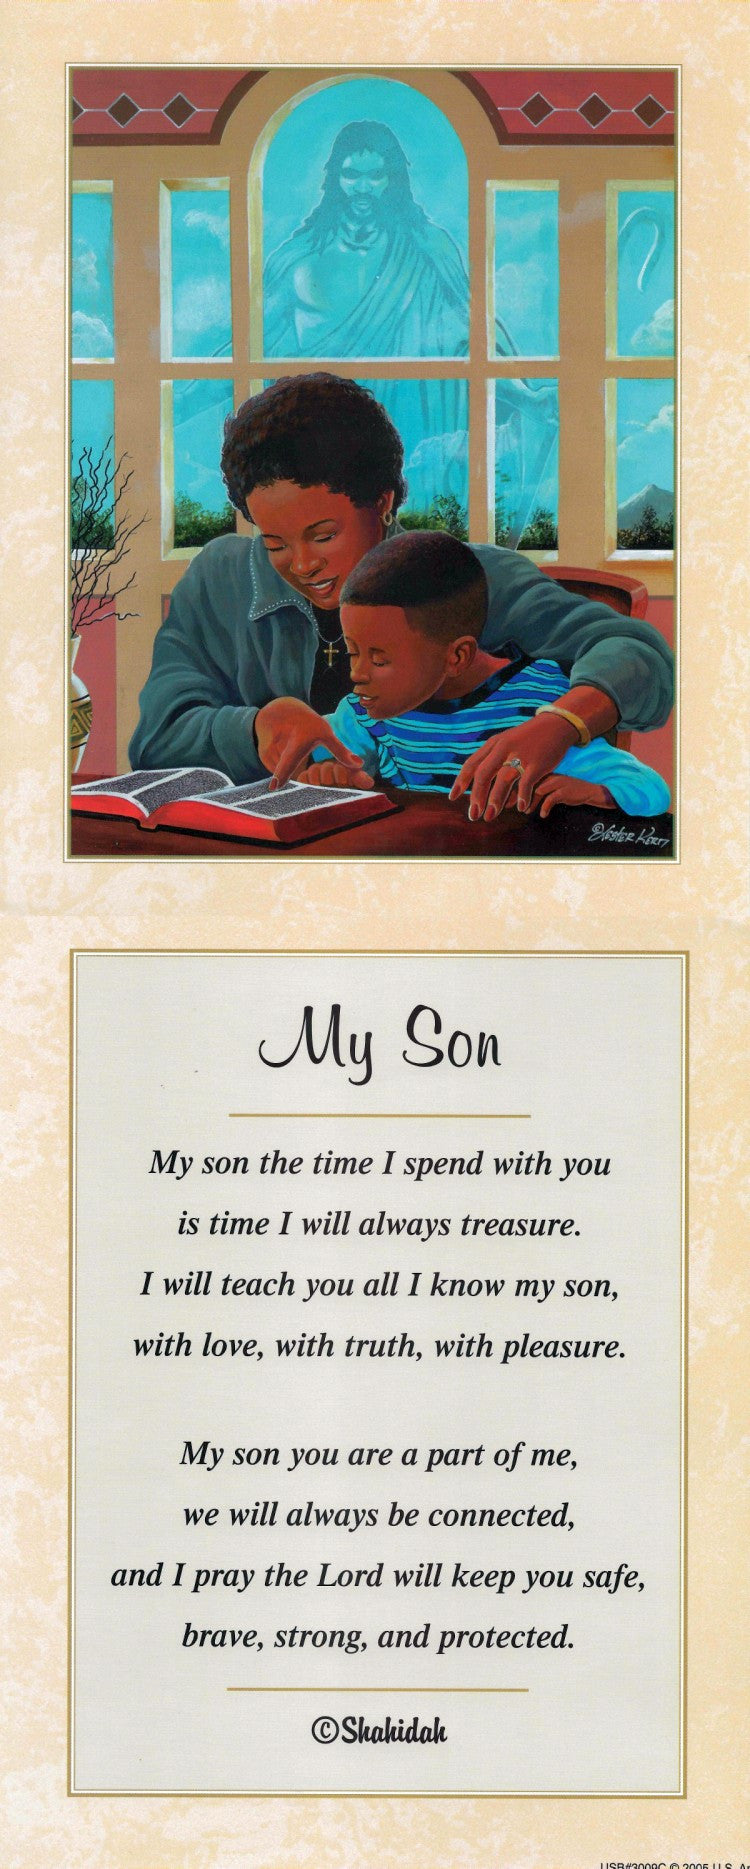 My Son by Lester Kern and Shahidah